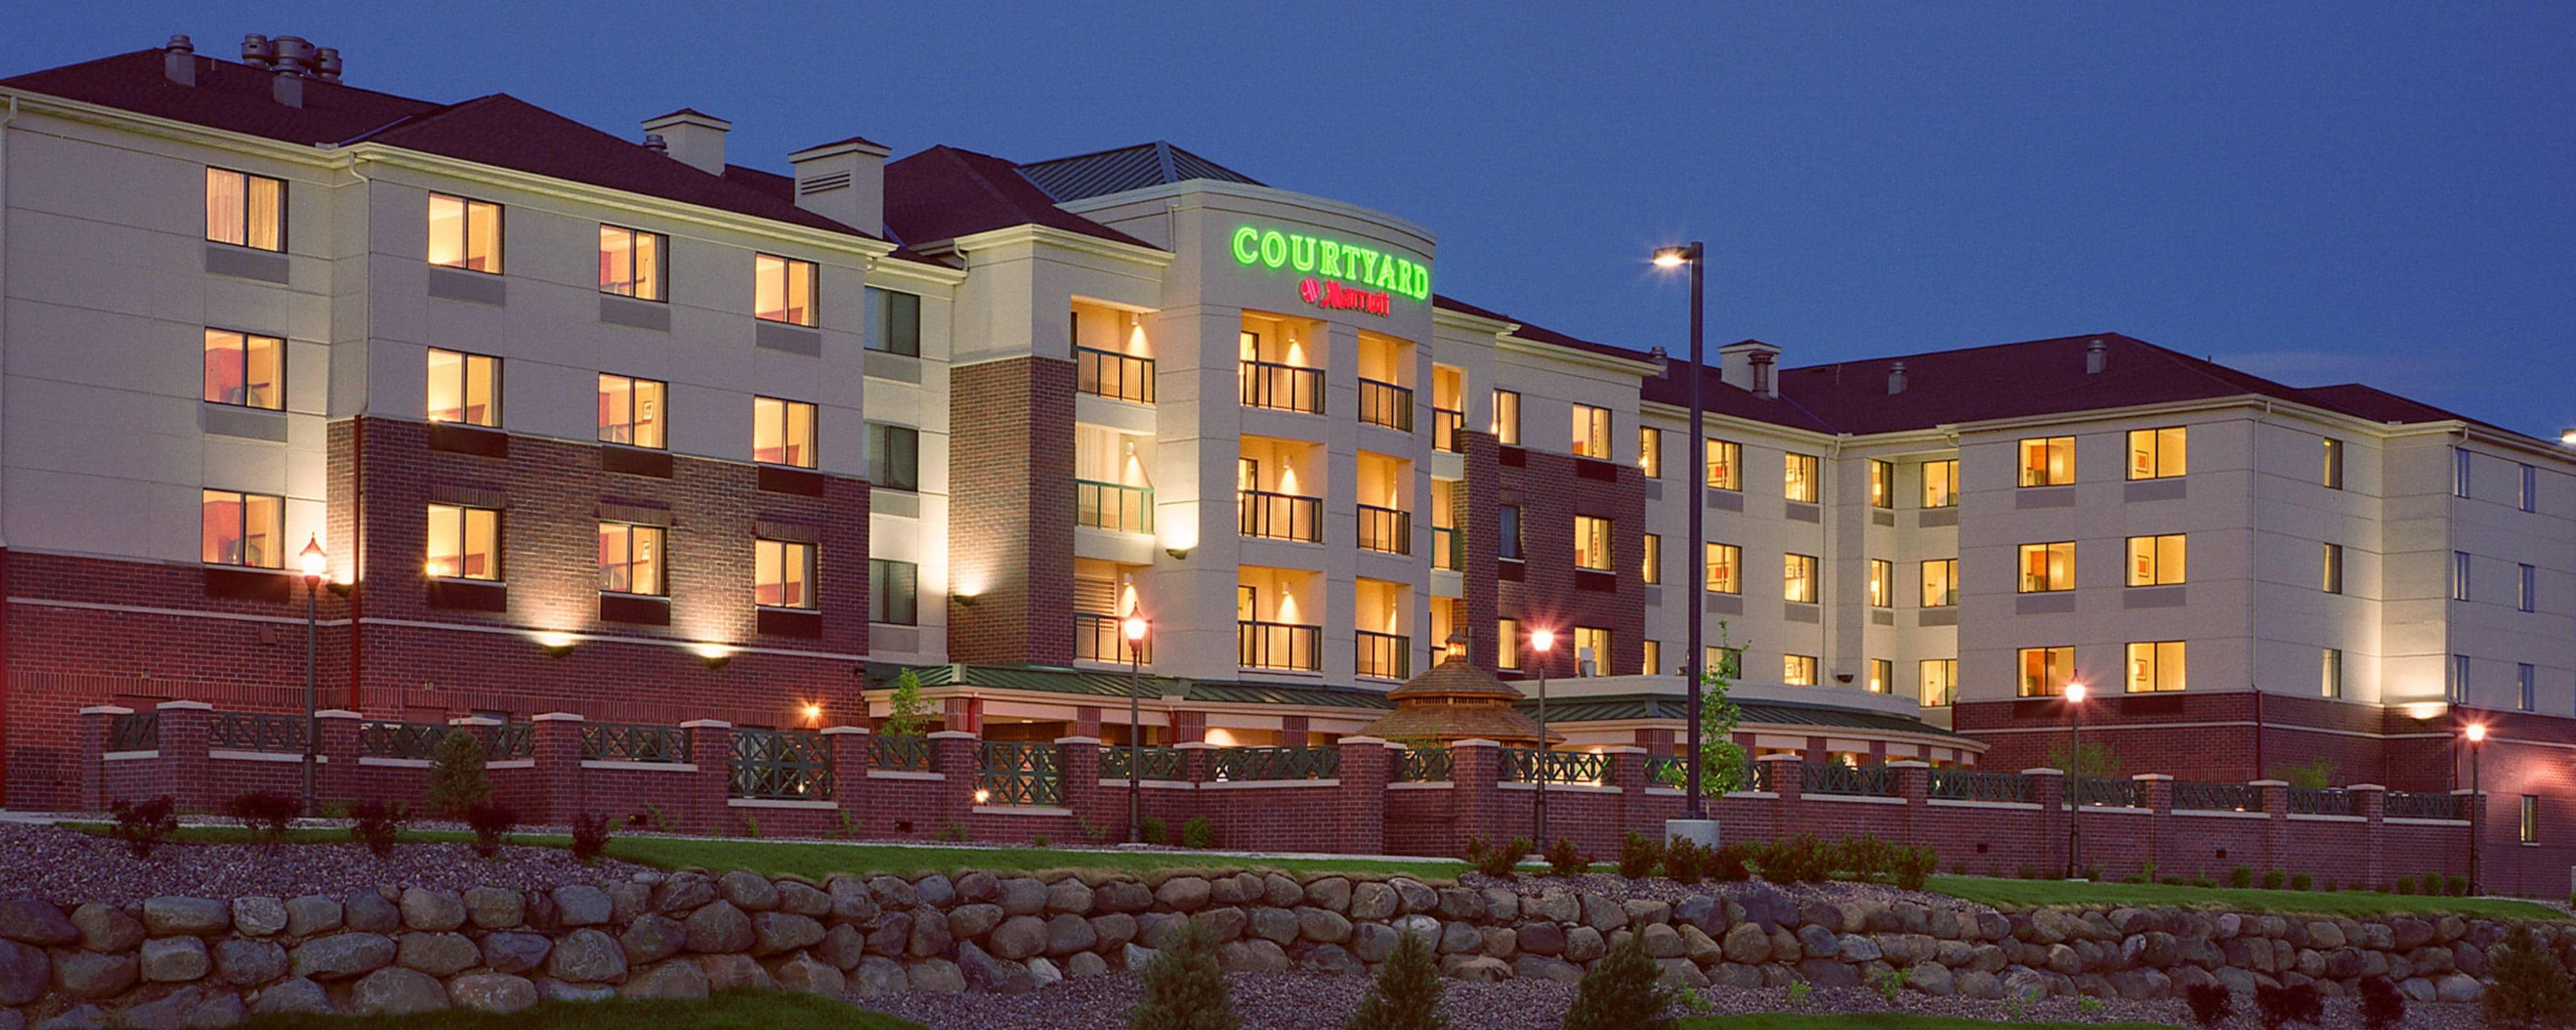 East Garage Uno Hotels Near Madison Airport With Free Shuttle Courtyard Madison East